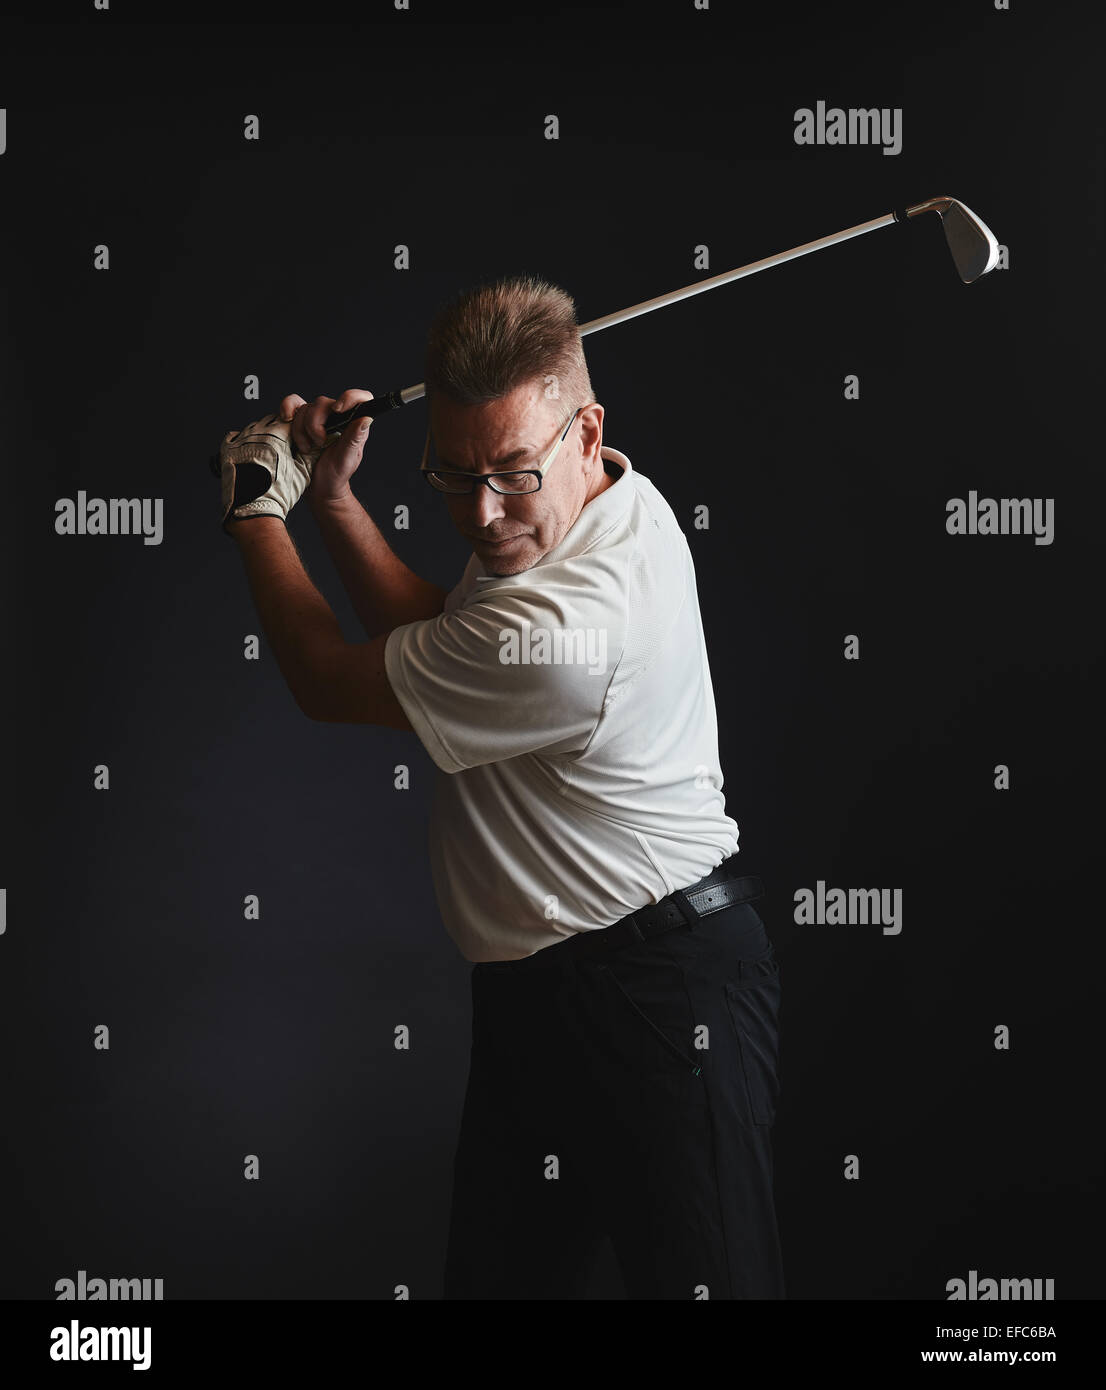 Mature man golfer wearing a white shirt and he exercise a swing - studio shot, black background - Stock Image